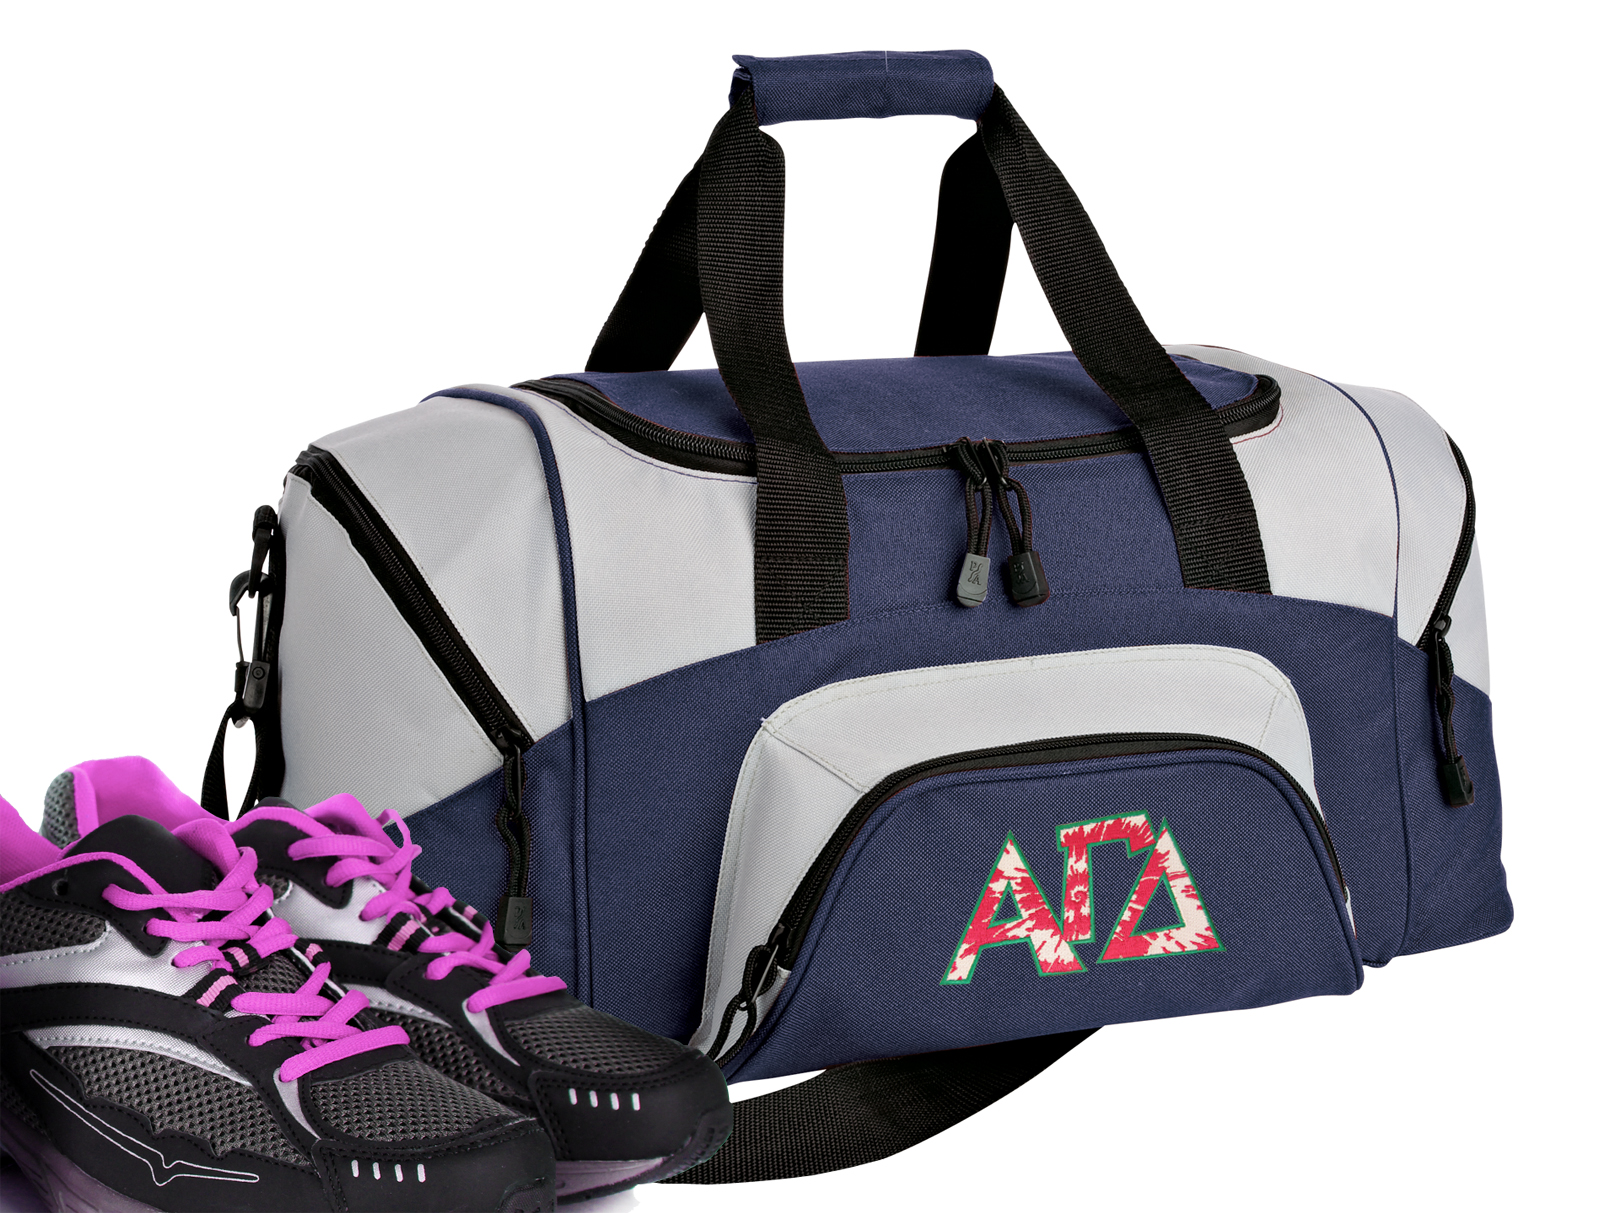 Small Alpha Gamma Sorority Duffle Bag or Small Alpha Gamma Gym Bags by